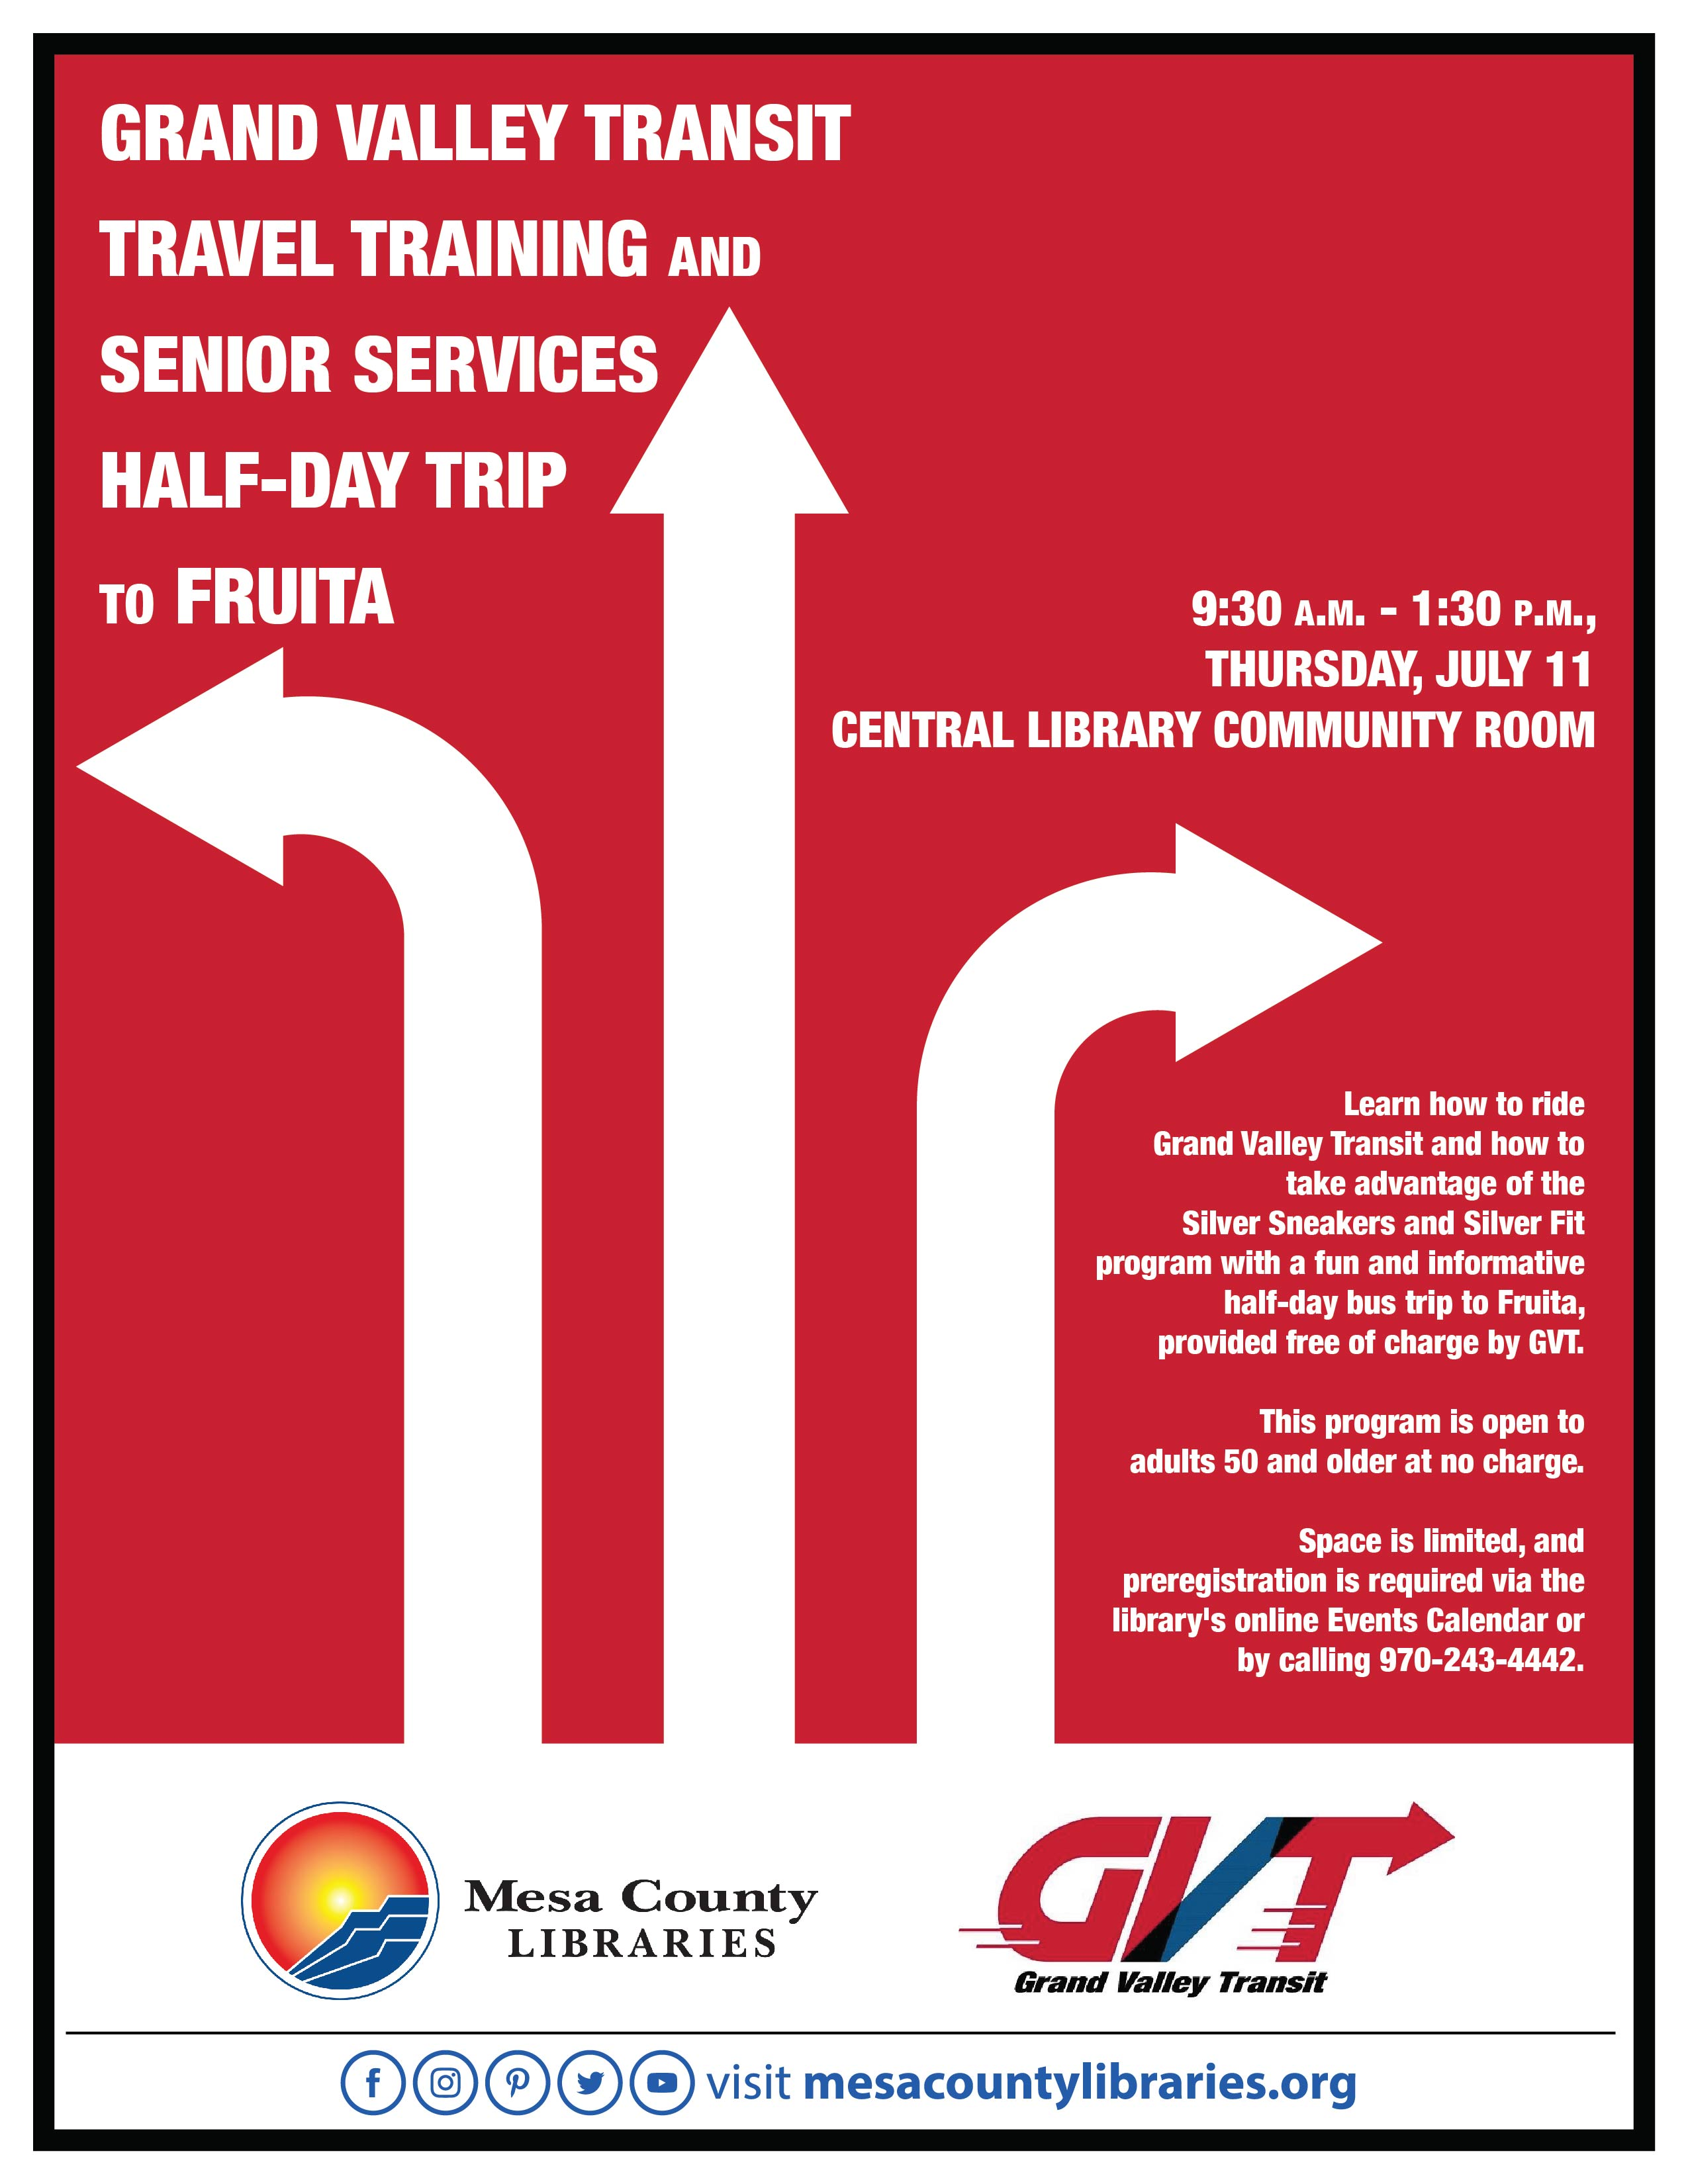 Grand Valley Transit Travel Training and Senior Services Half-Day Trip to Fruita